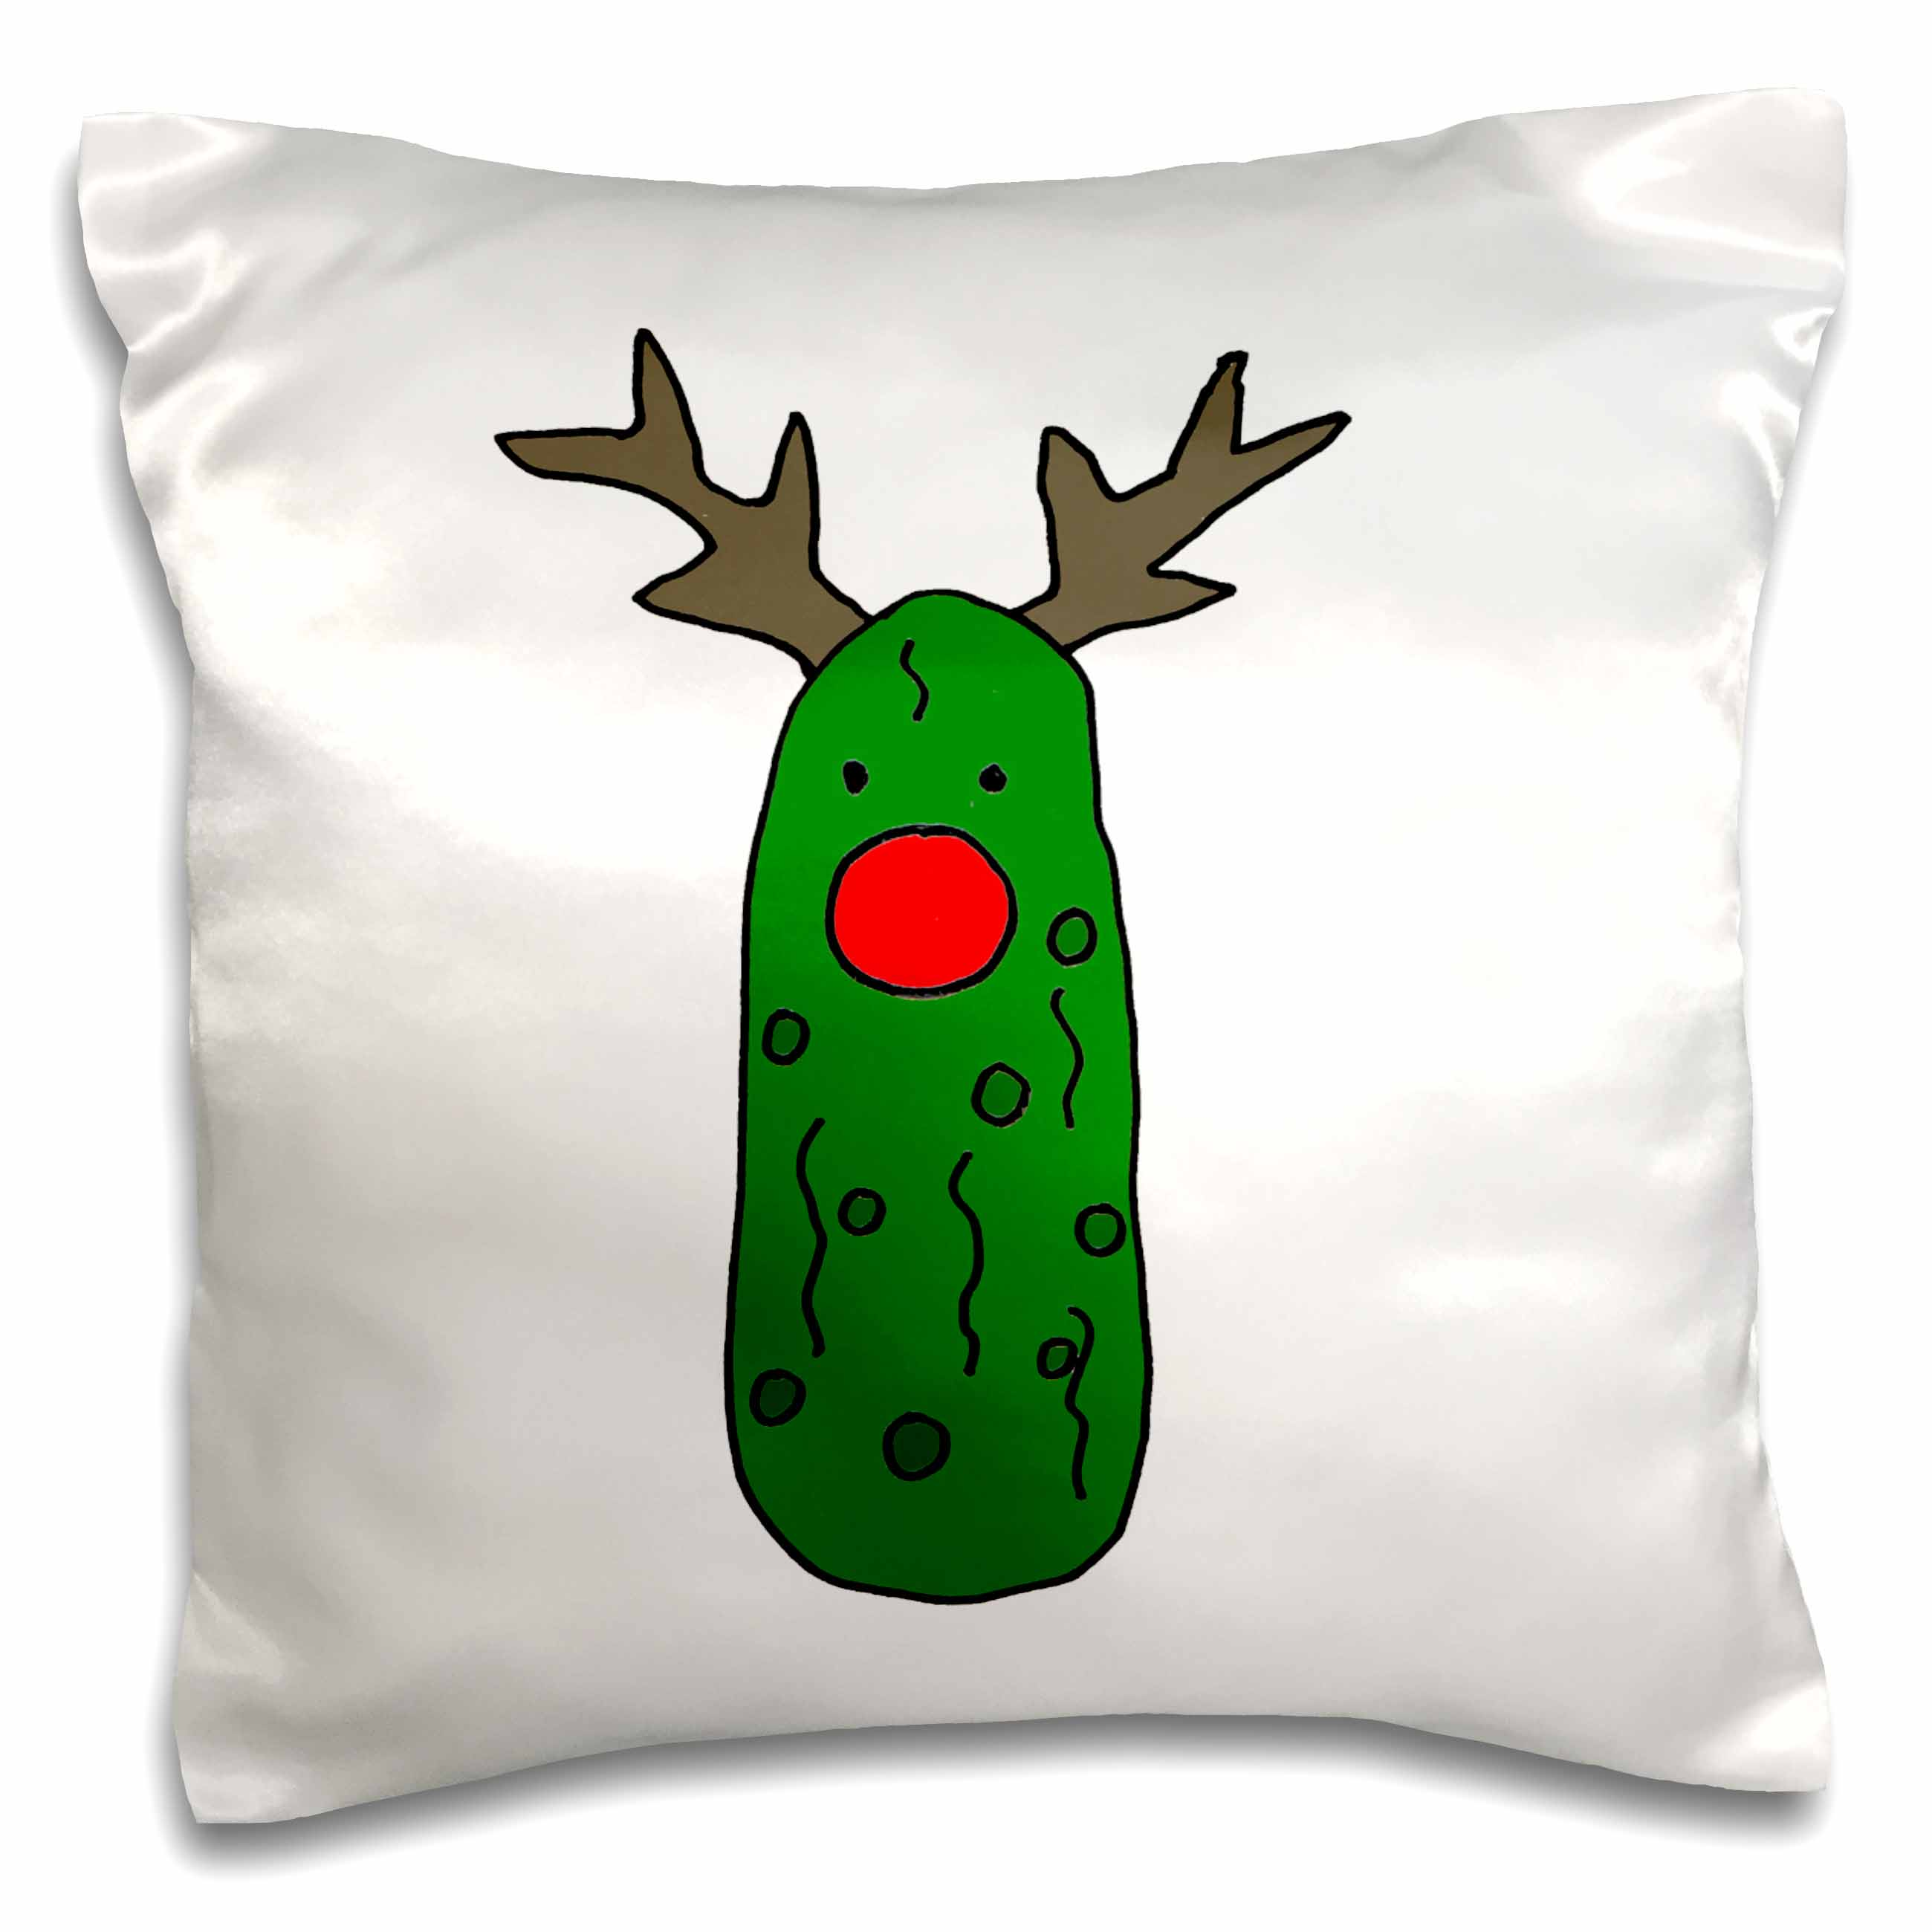 Image of 3dRose Funny Pickle with Red Nose and Antlers like Rudolph Reindeer, Pillow Case, 16 by 16-inch